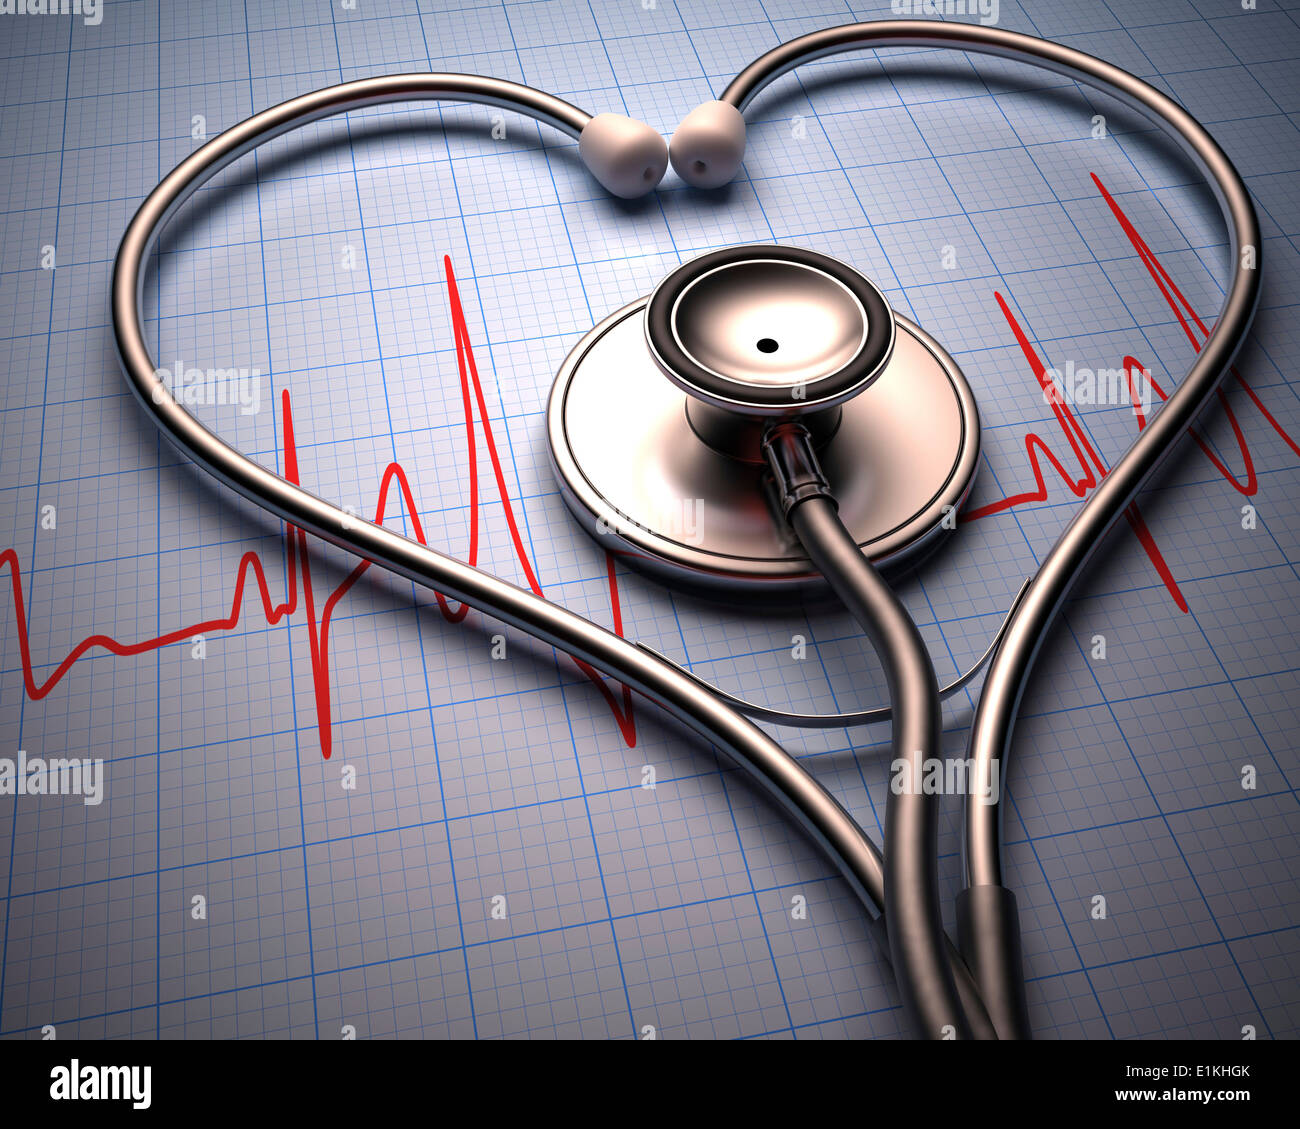 Stethoscope in the shape of a heart and cardiograph. - Stock Image